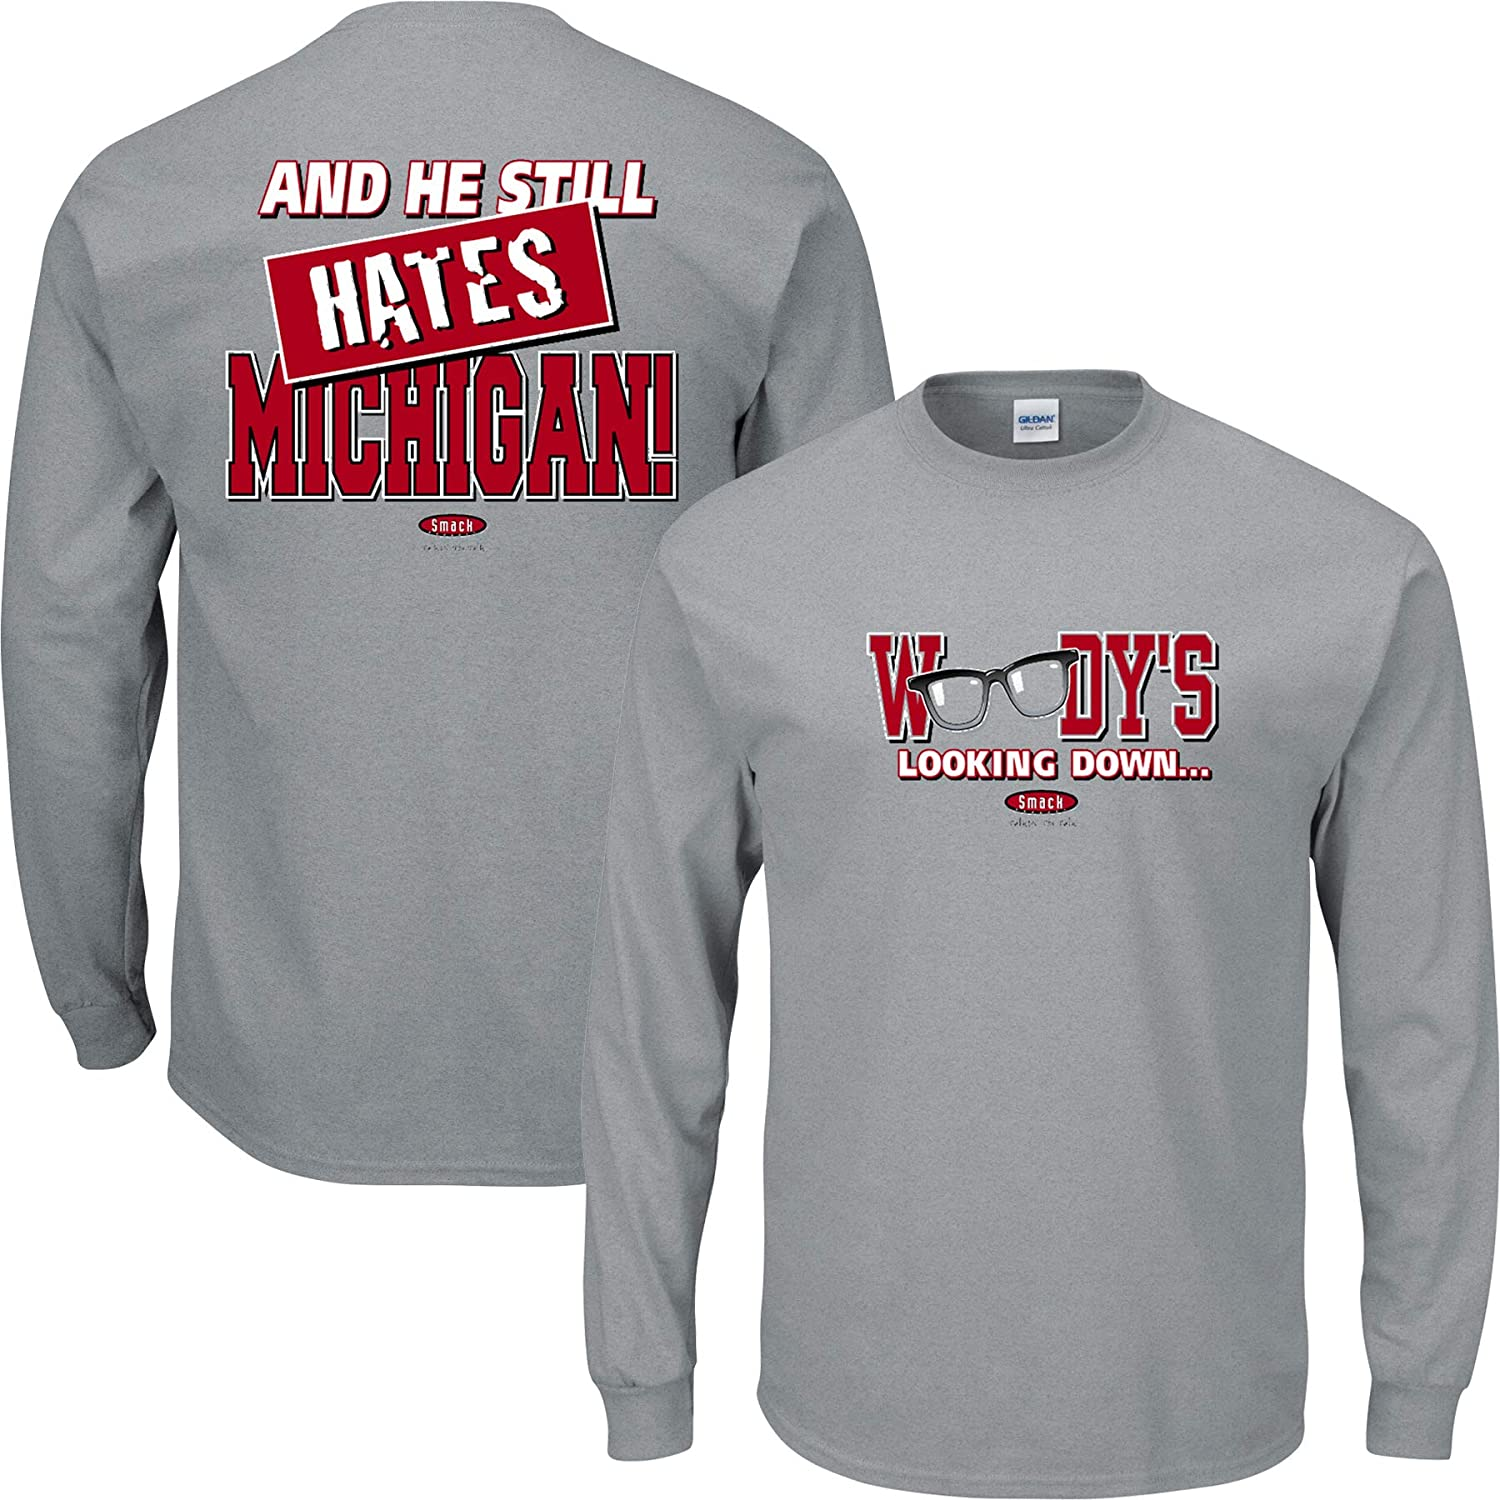 Smack Apparel Ohio State Football Fans. Woody's Looking Down (Anti-Michigan). Grey T-Shirt (Sm-5X)